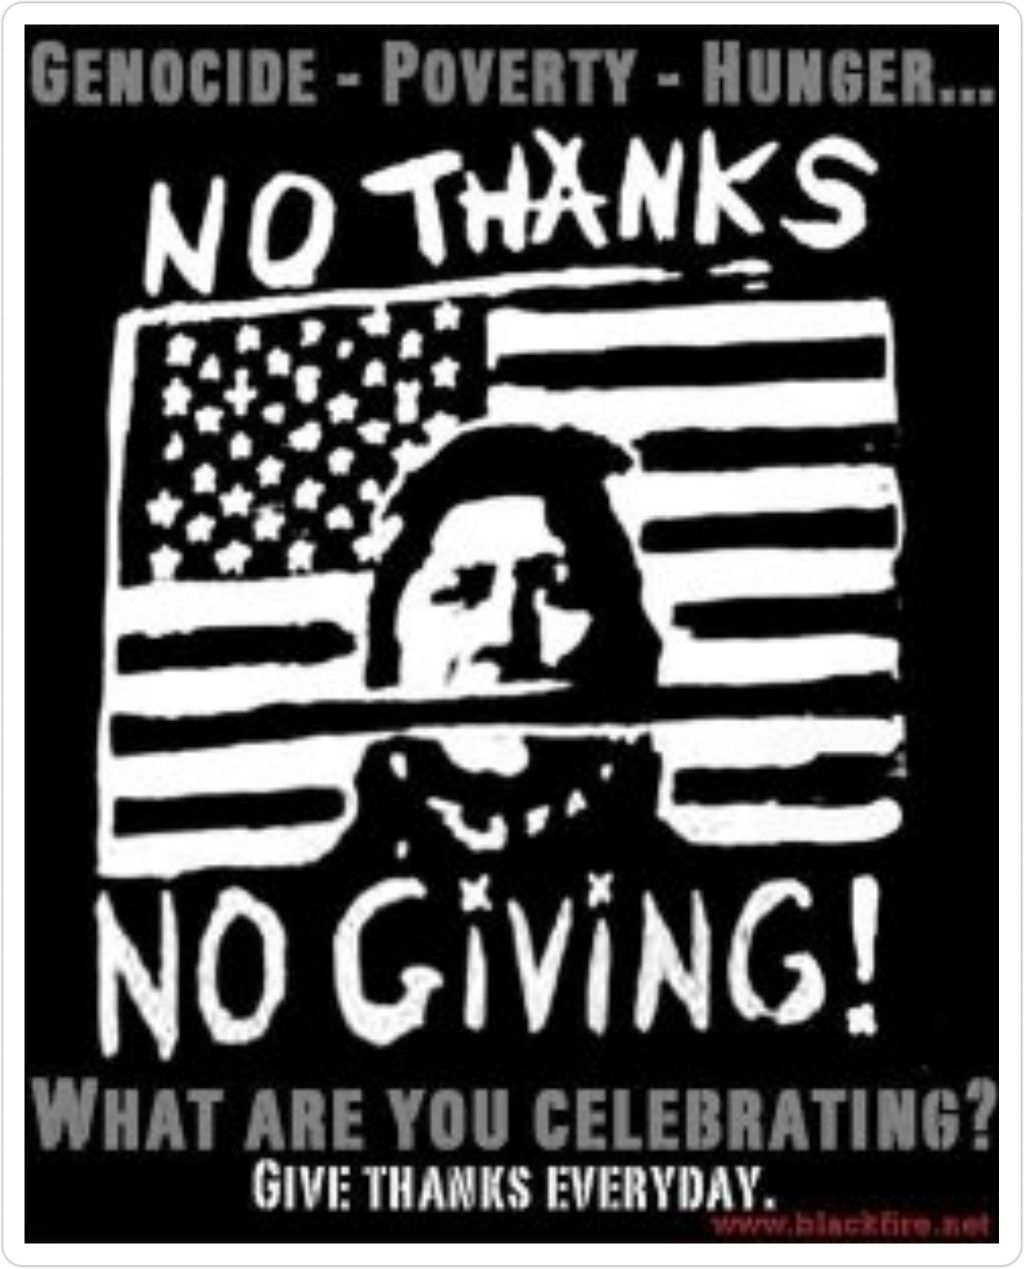 Pin By Le Velle Shepard On Just Keeping It 100 Native American Day Of Mourning History Textbook